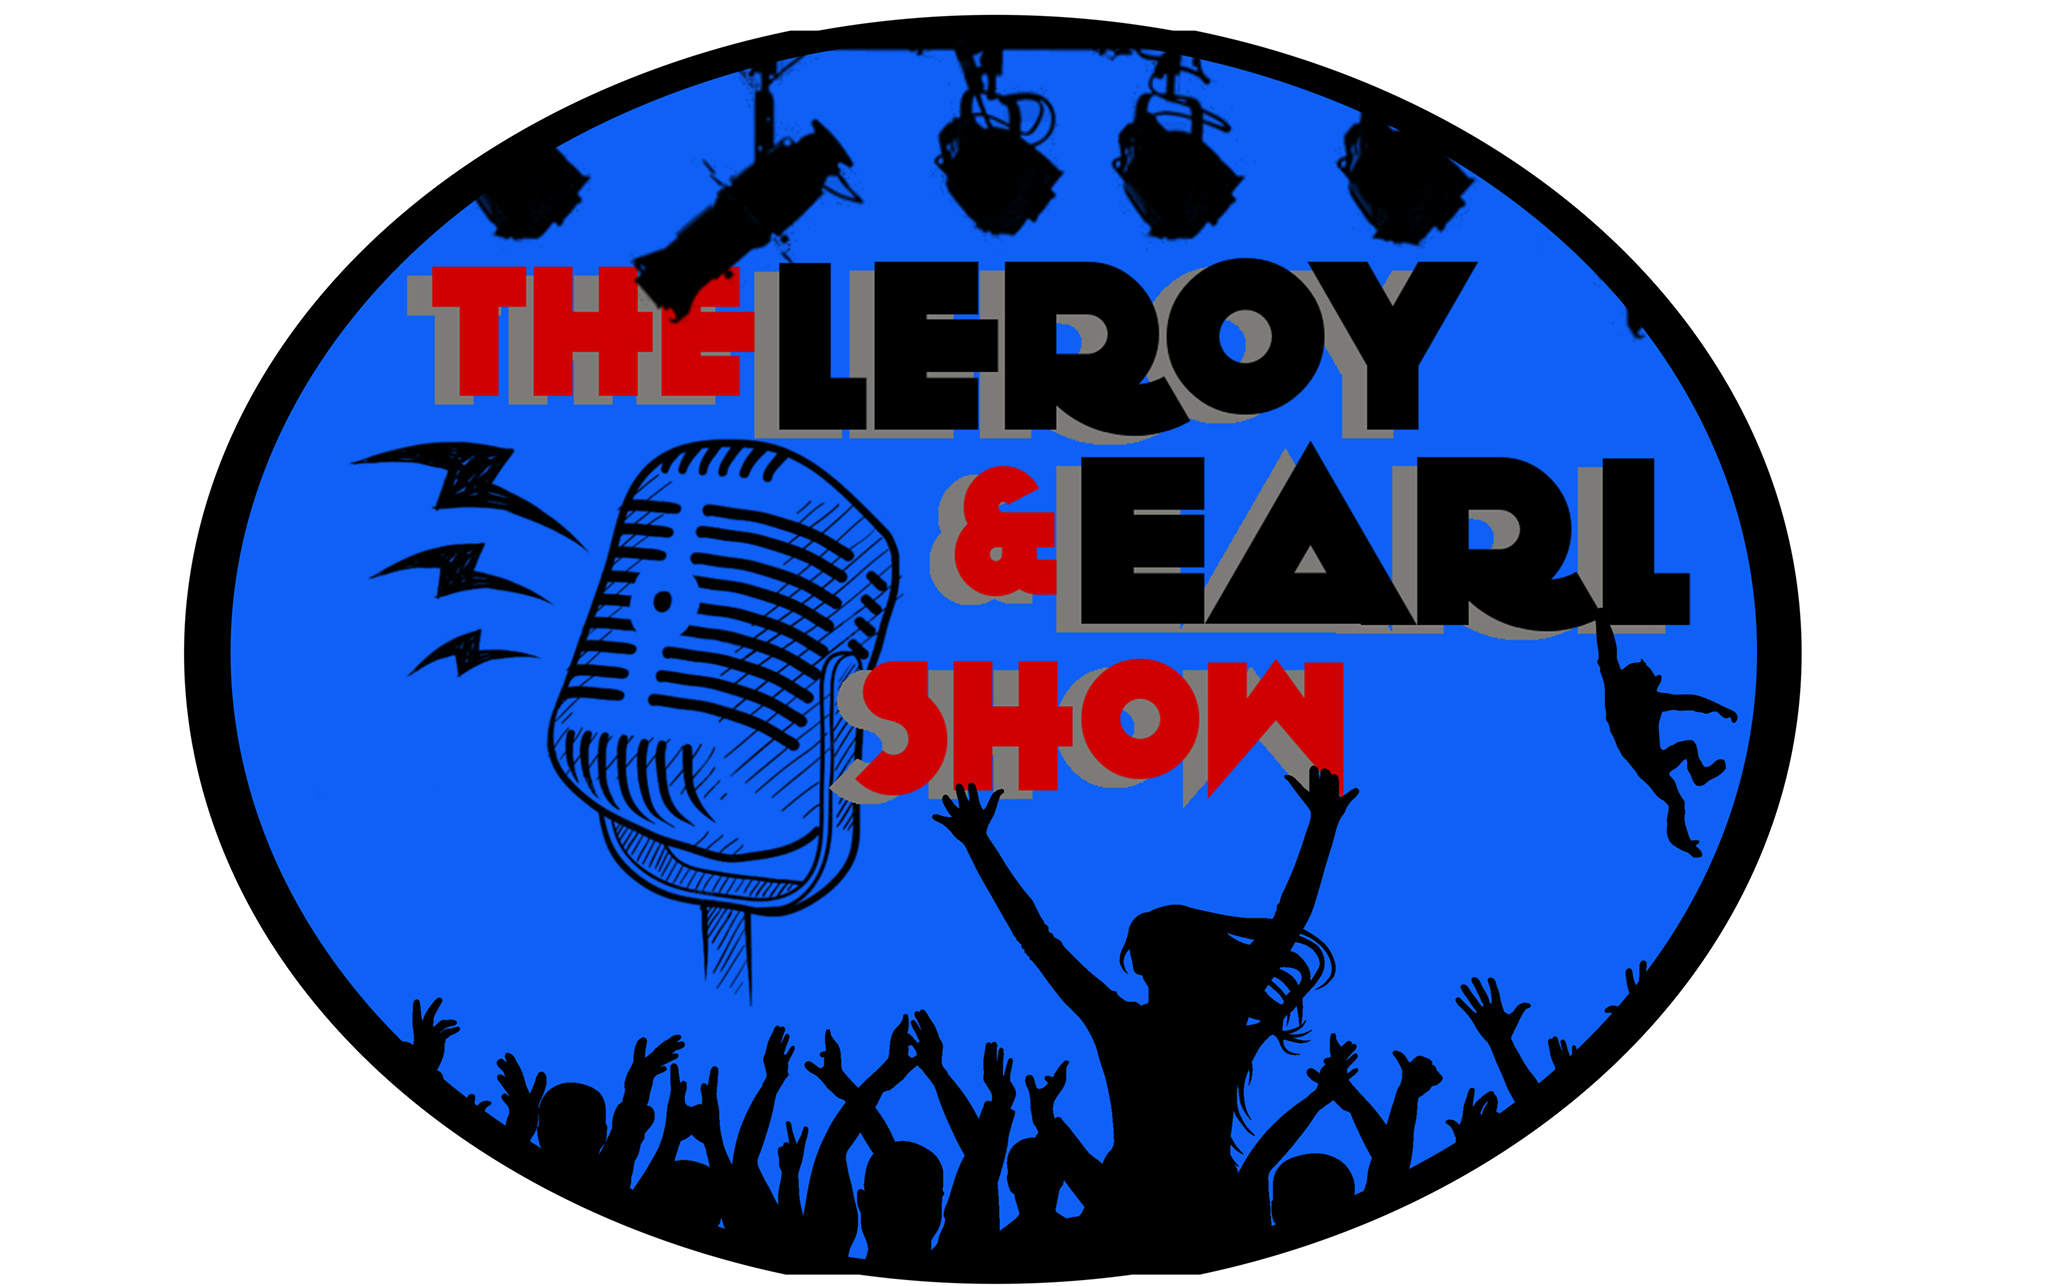 The Leroy And Earl Show (feat. Carleeezy)